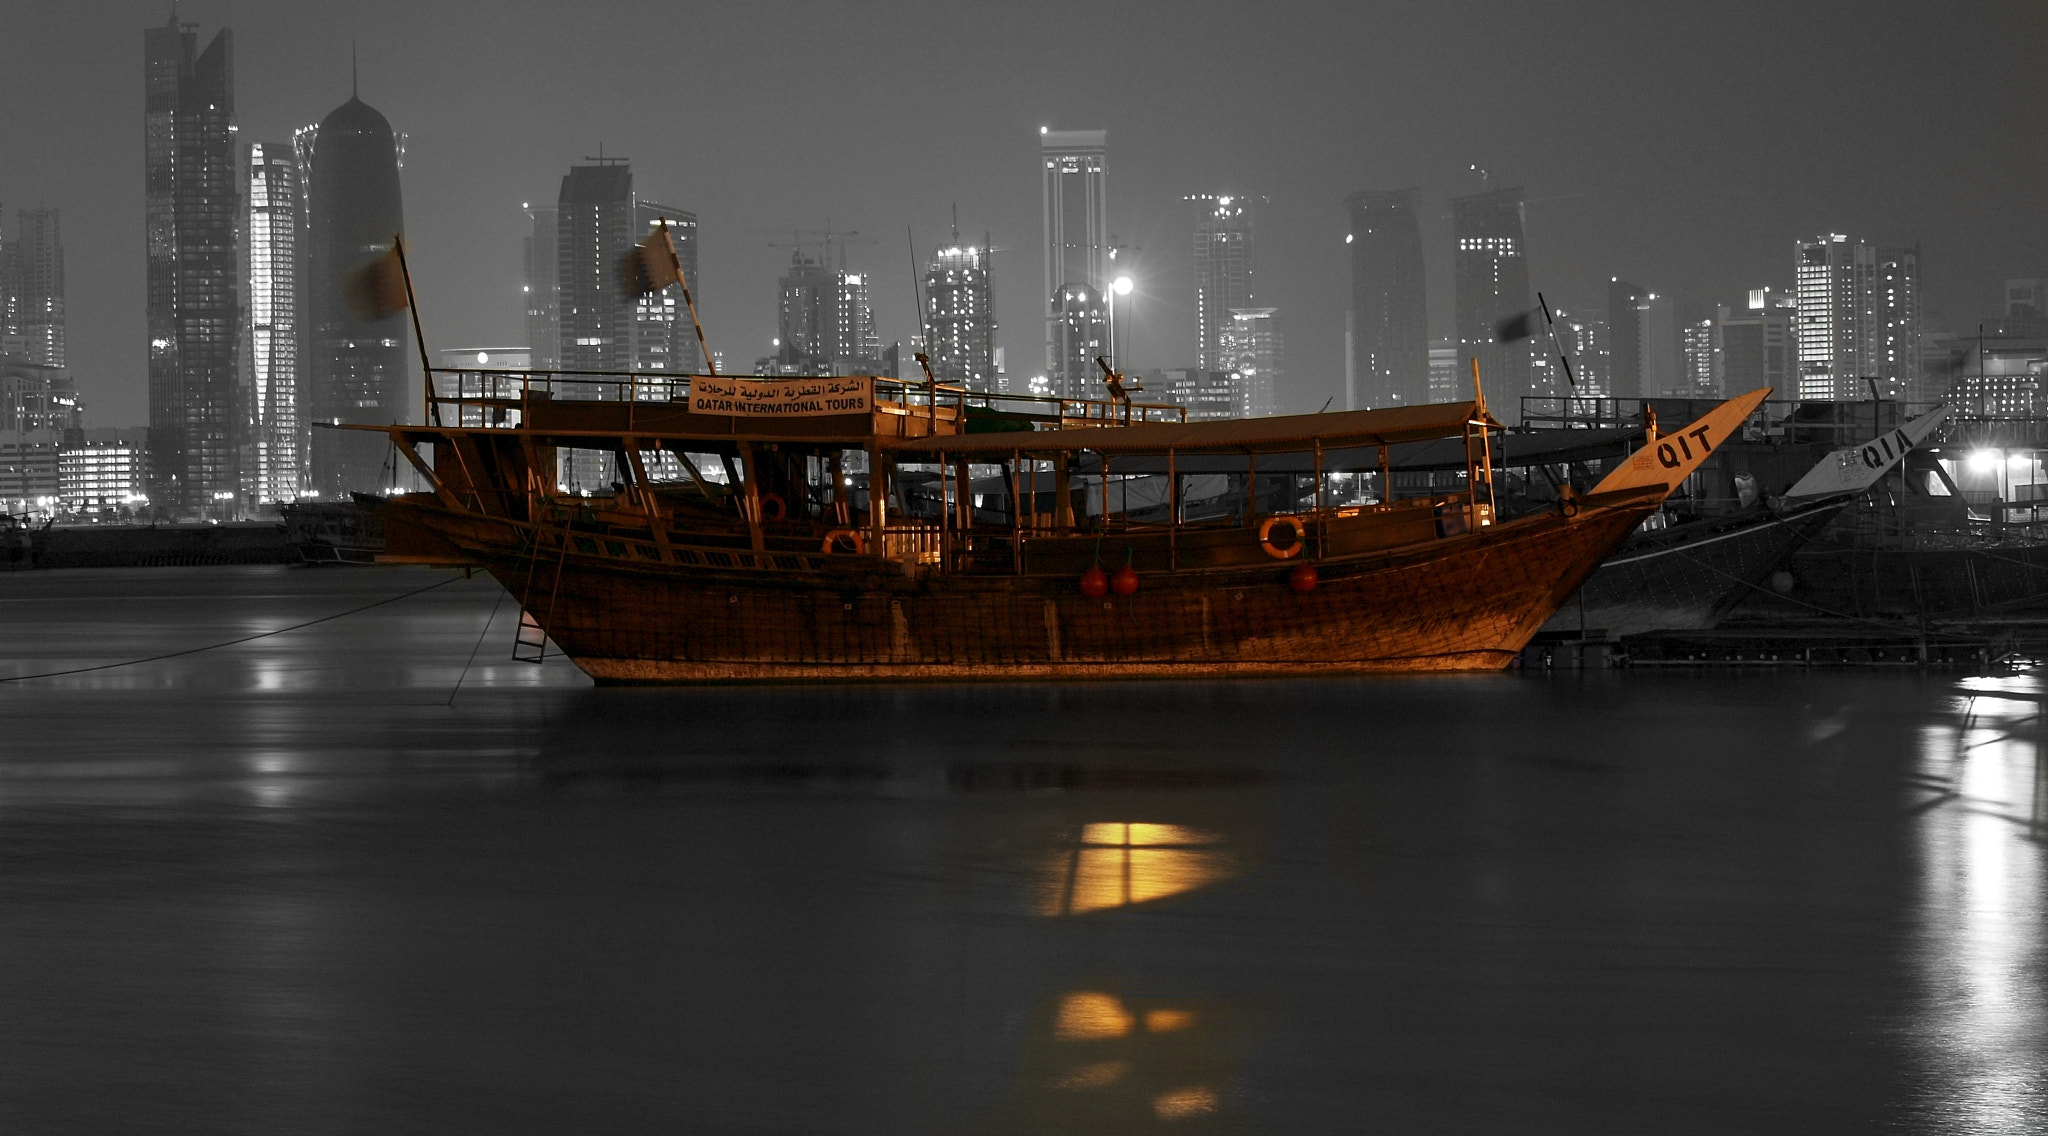 Photograph Old Abra in front of New Doha by Ashmieke . on 500px